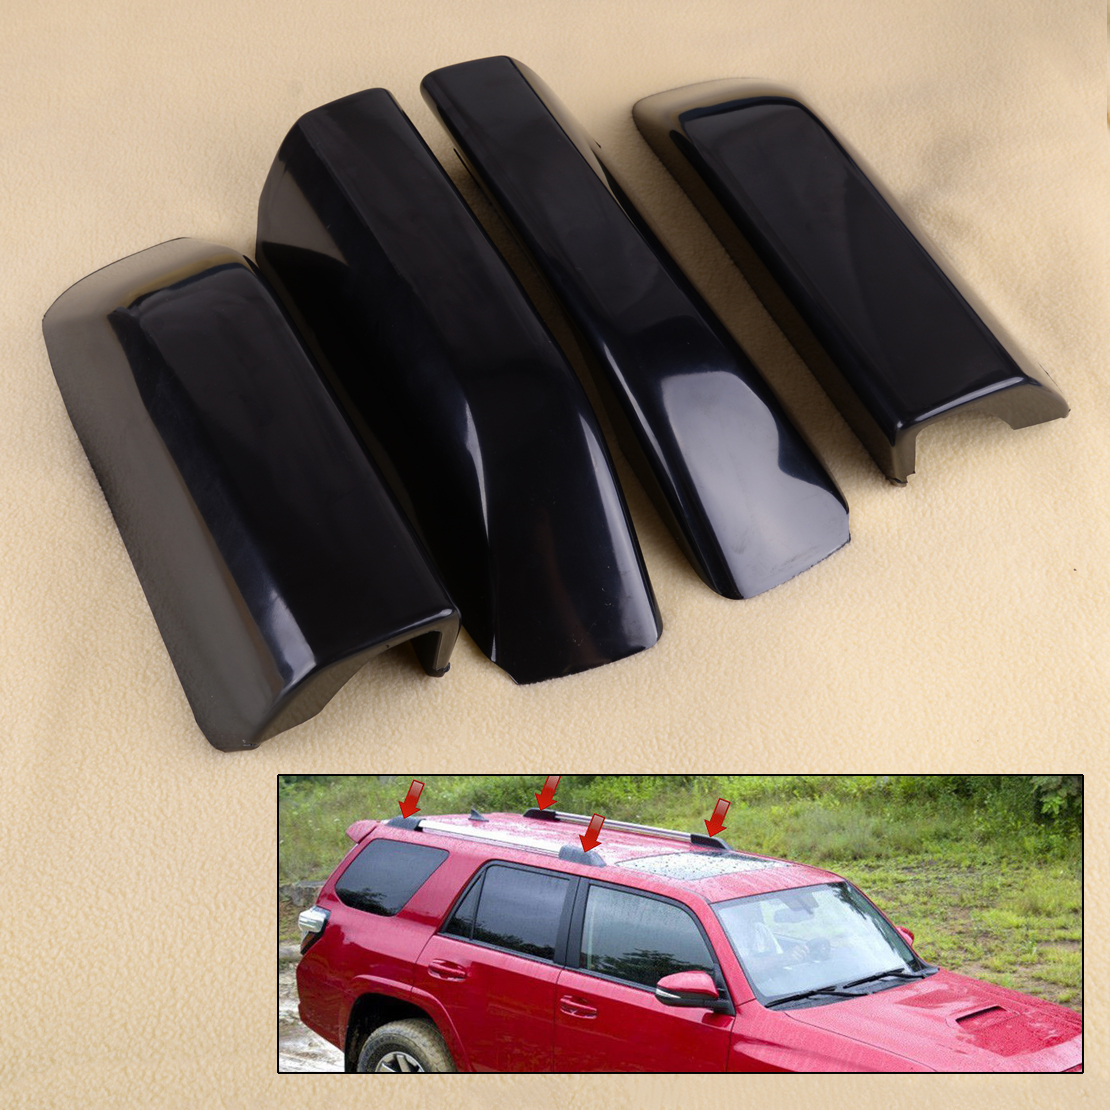 beler 4PCS Roof Luggage Rack Rail End Cover Shell fit for Toyota <font><b>4Runner</b></font> N280 <font><b>2010</b></font> 2011 2012 2013 2014 2015 2016 2017 2018 image